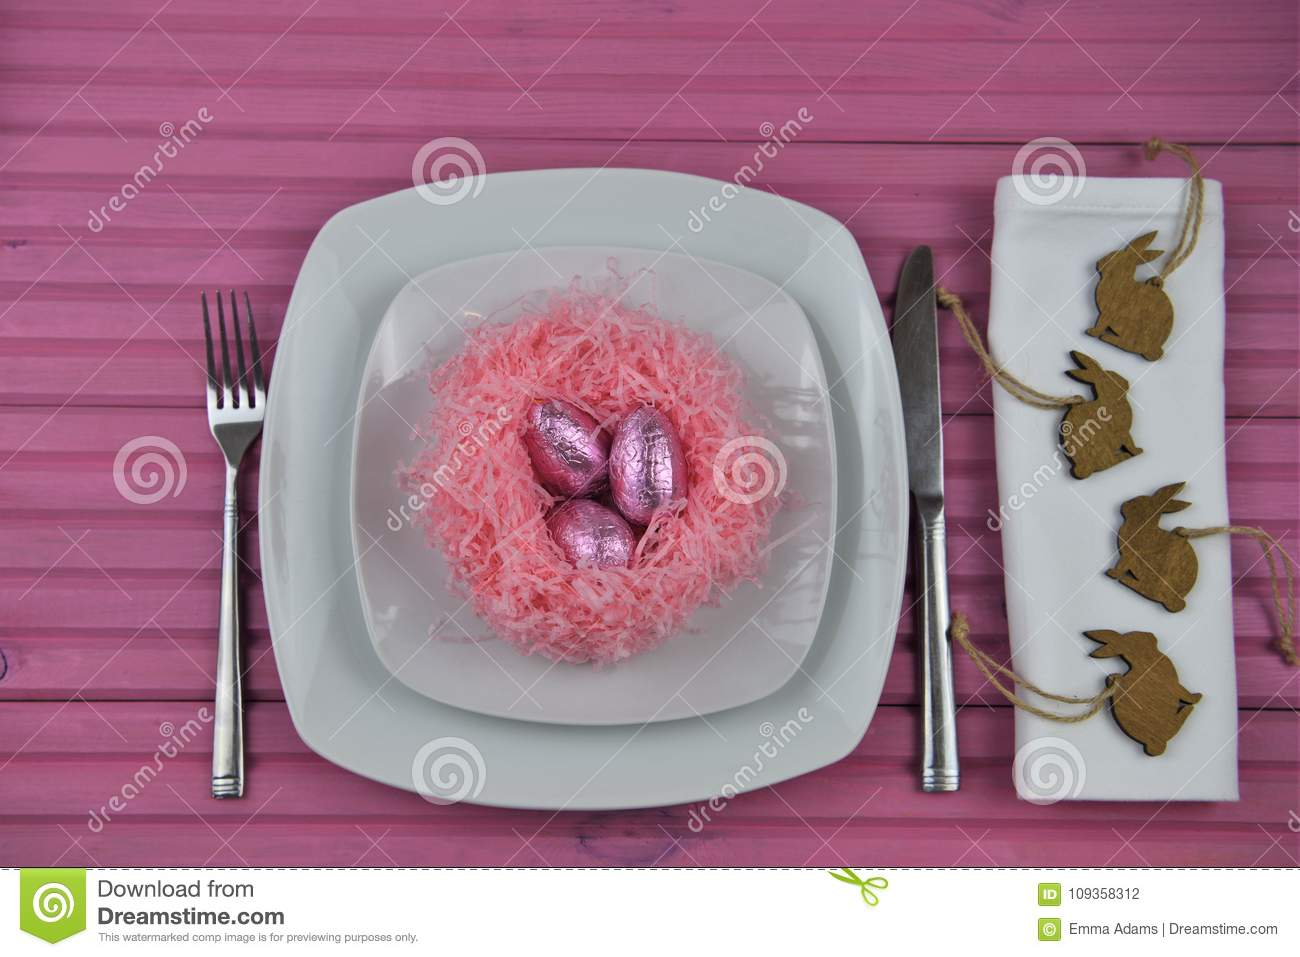 Pink Easter time table place setting in white with chocolate wrapped eggs and bunny rabbit shape decorations